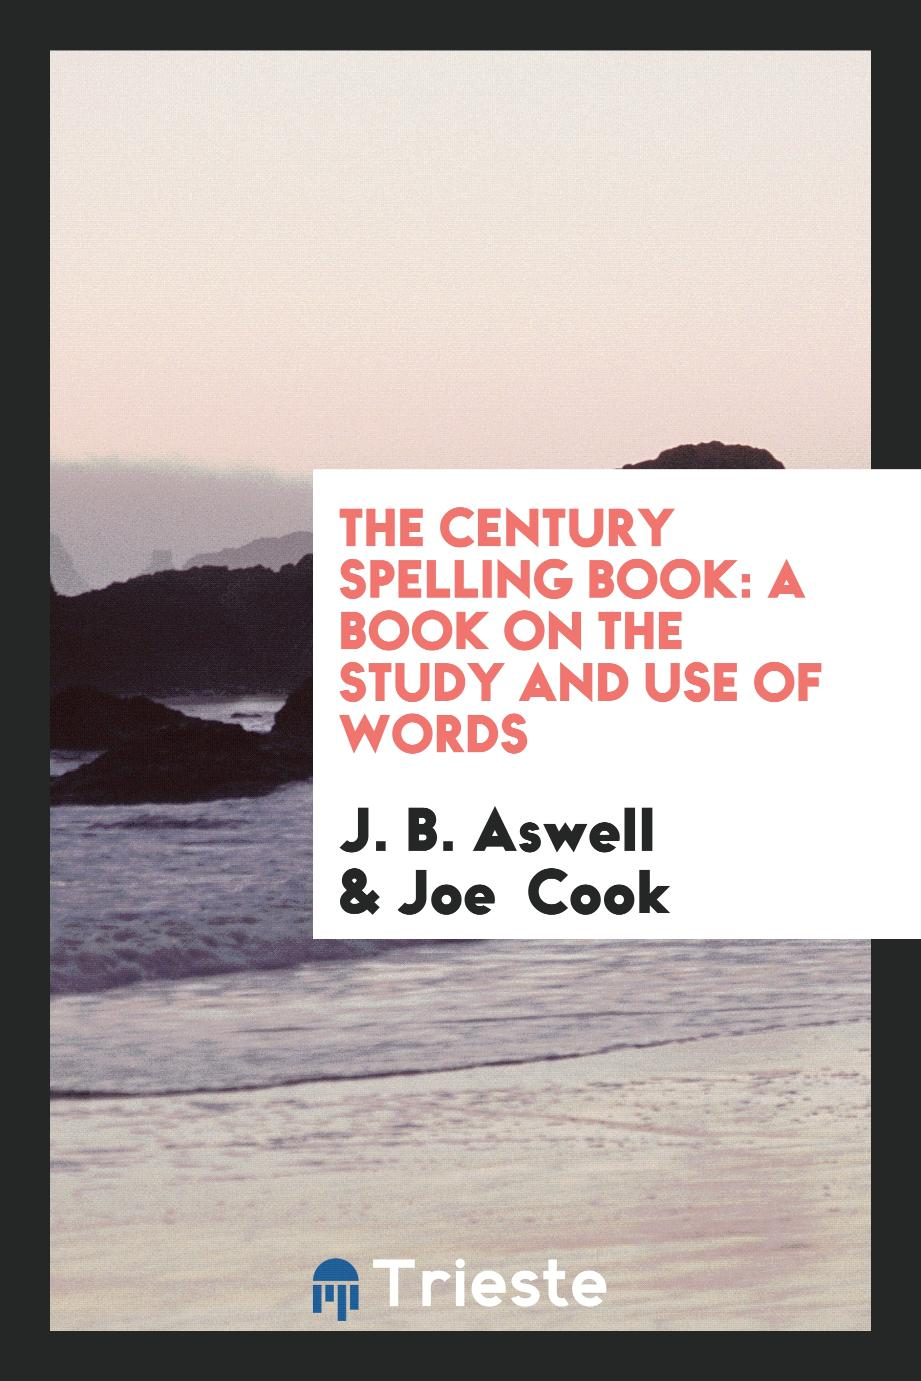 The Century Spelling Book: A Book on the Study and Use of Words